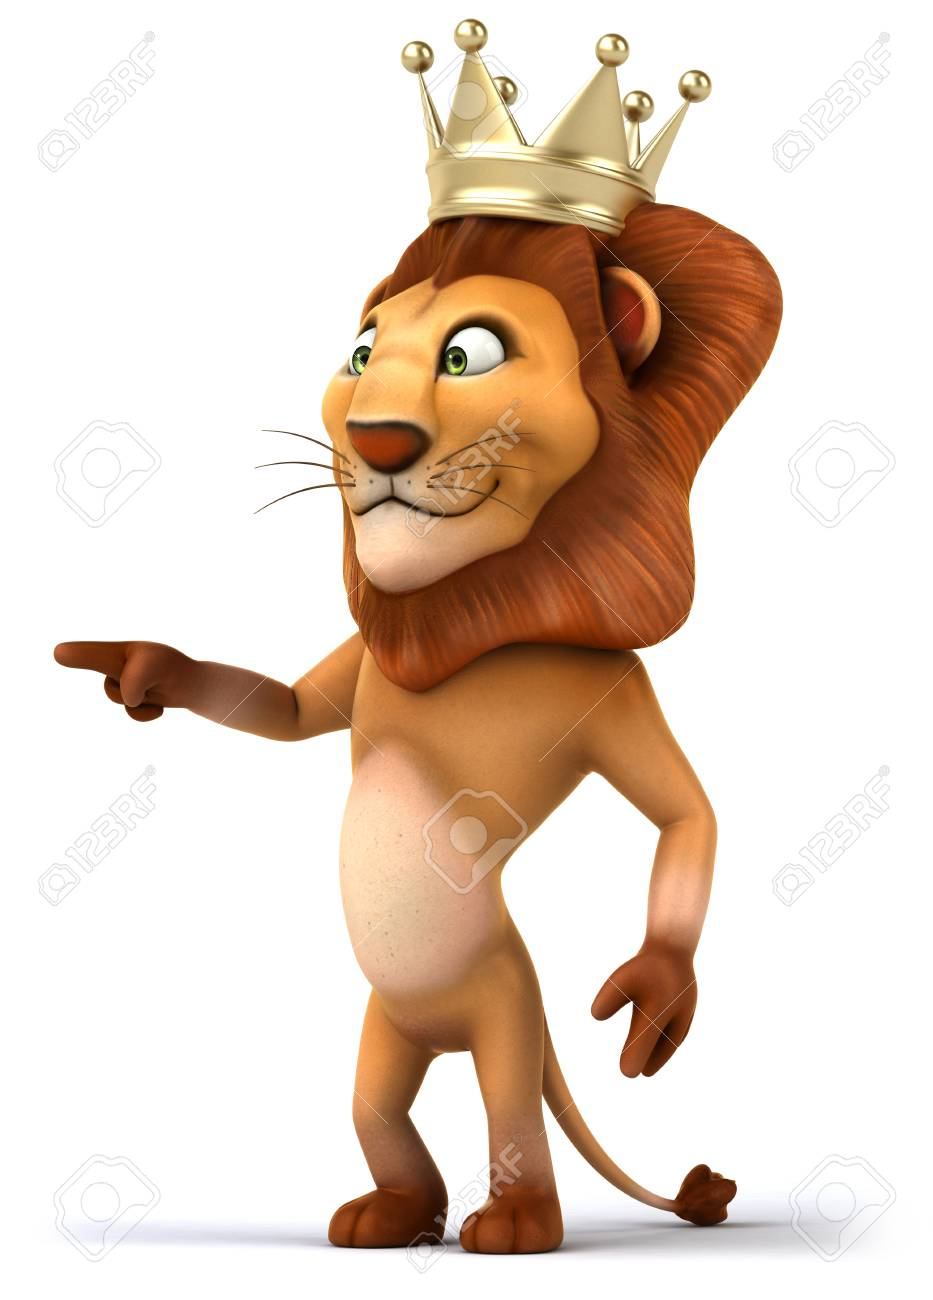 Cartoon Lion King With A Crown Pointing With Fingers Stock Photo Picture And Royalty Free Image Image 79372794 Affordable and search from millions of royalty free images, photos and vectors. cartoon lion king with a crown pointing with fingers